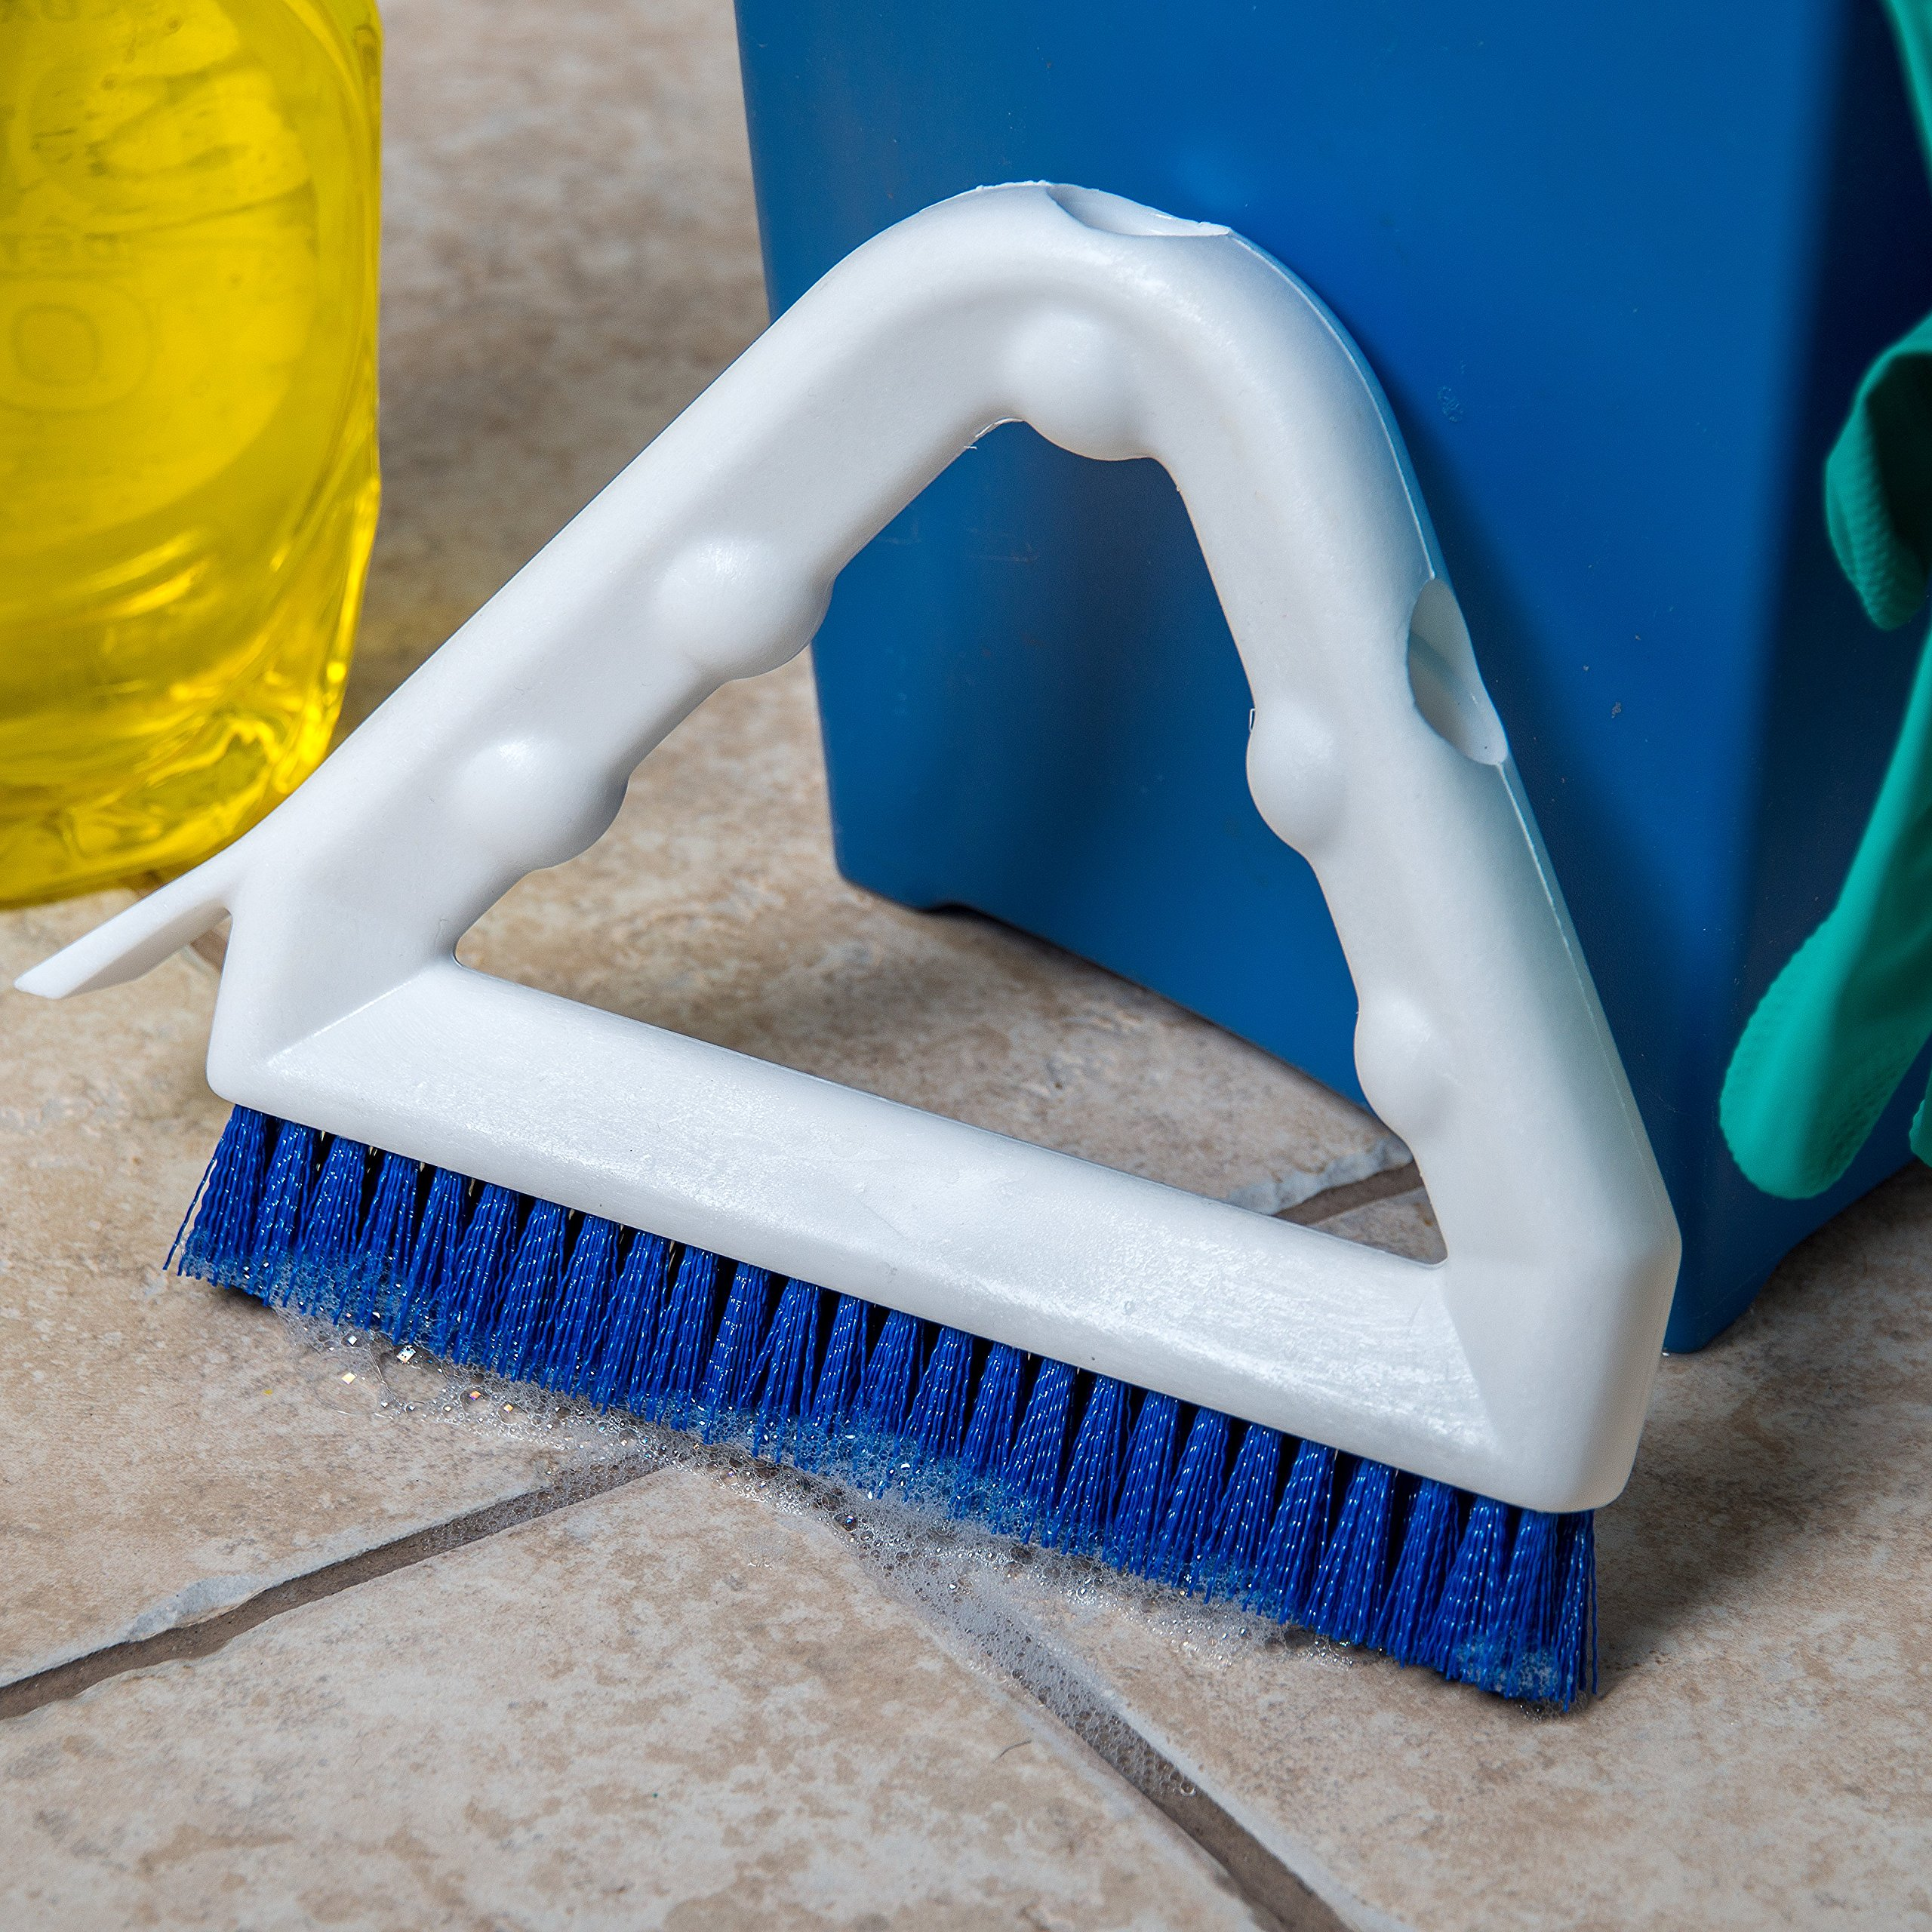 Carlisle 4132314 Sparta Tile and Grout Brush with Scraper, 9'', Blue by Carlisle (Image #6)